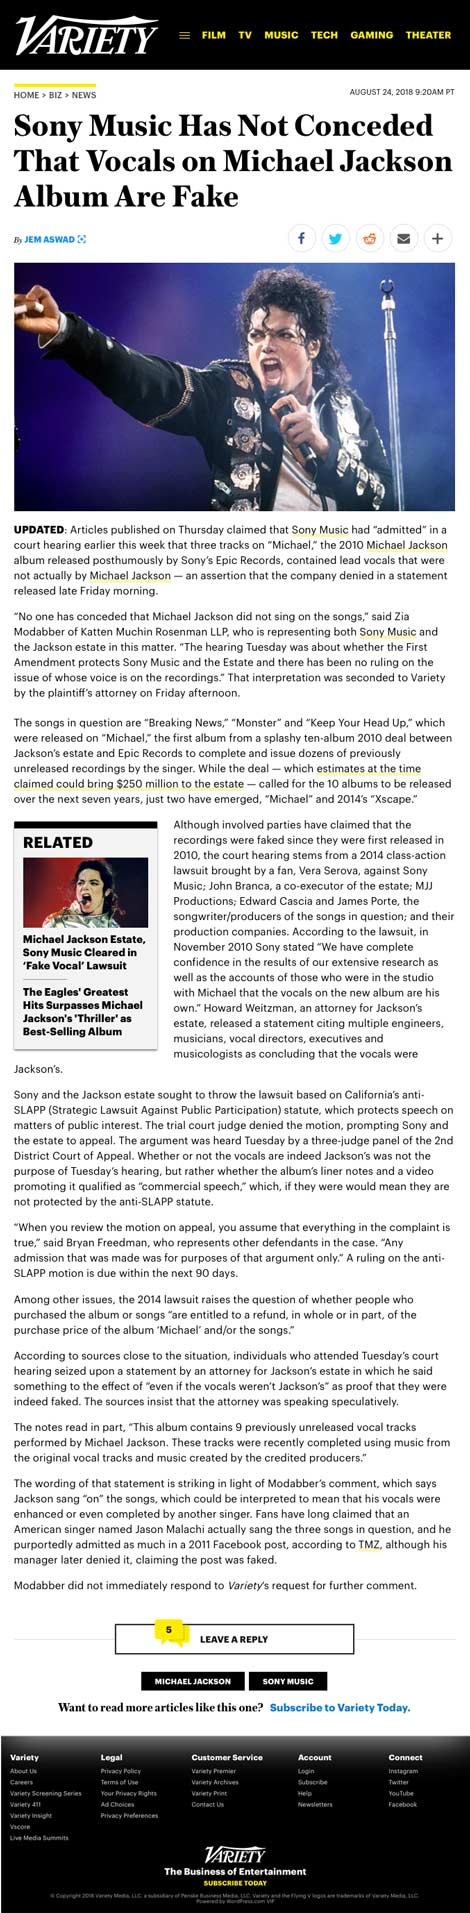 Sony Music Has Not Conceded That Vocals on Michael Jackson Album Are Fake - article by Variety.com